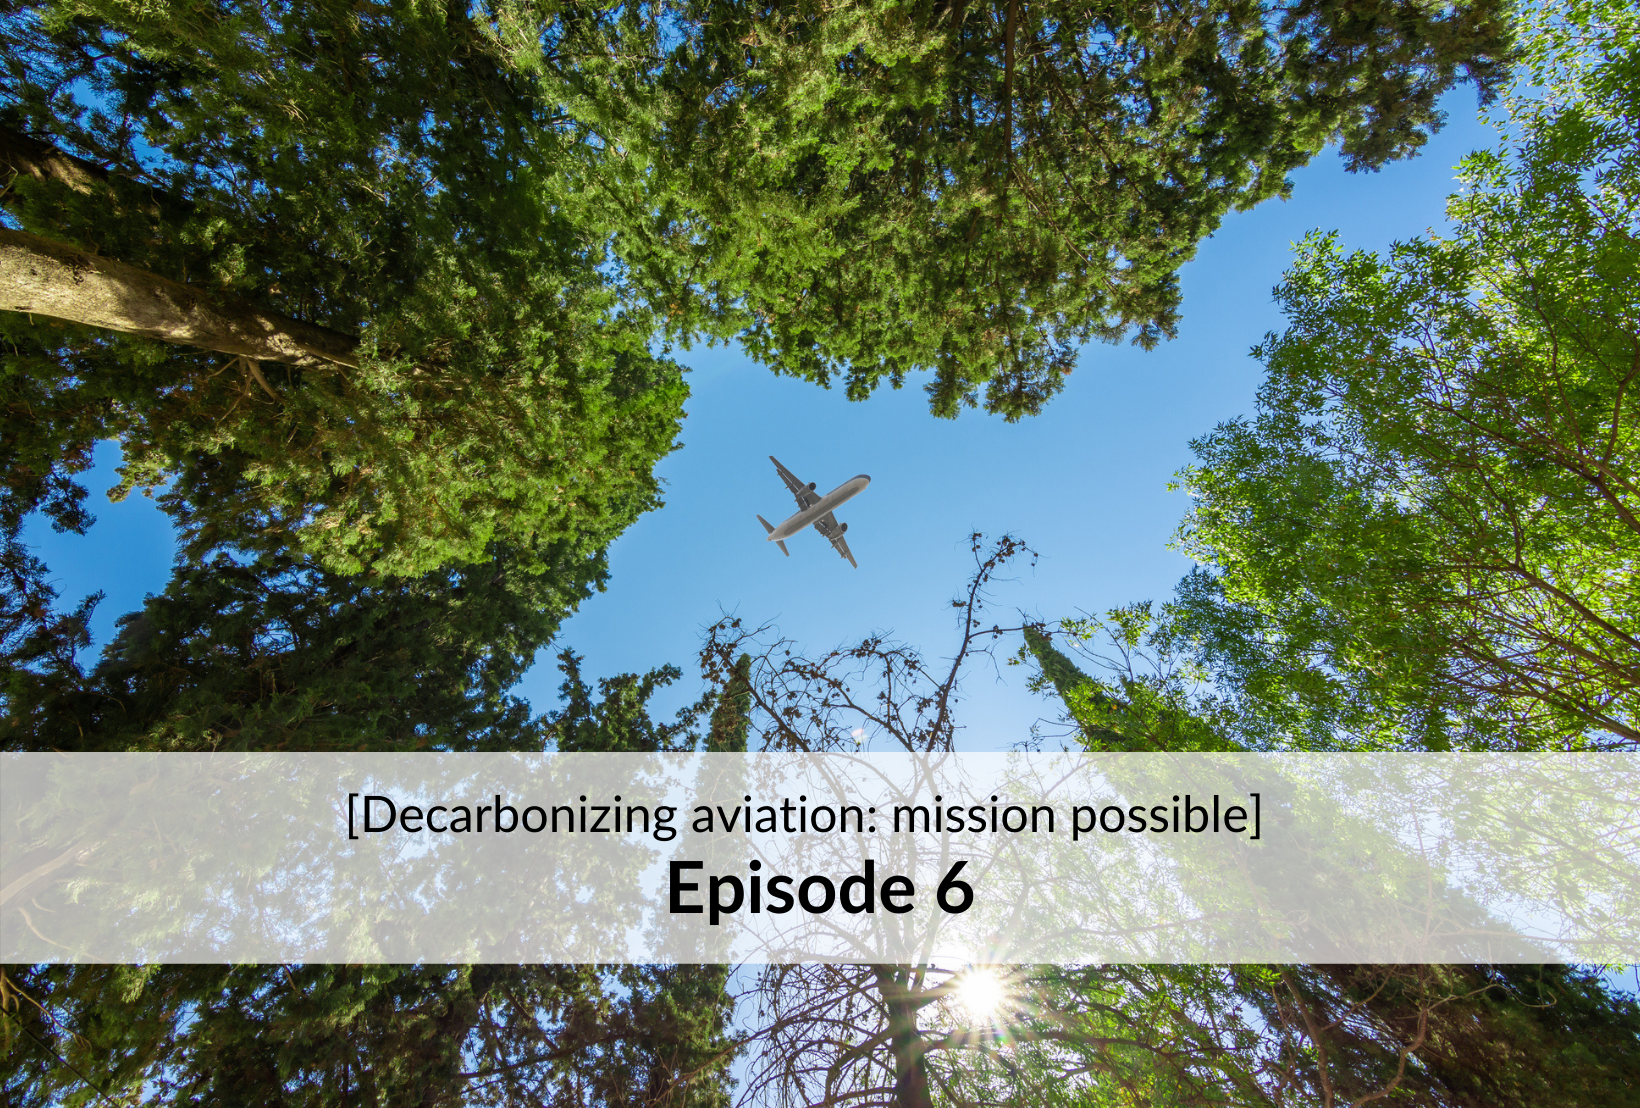 [Decarbonizing aviation: mission possible] - Episode 6: The hydrogen aircraft